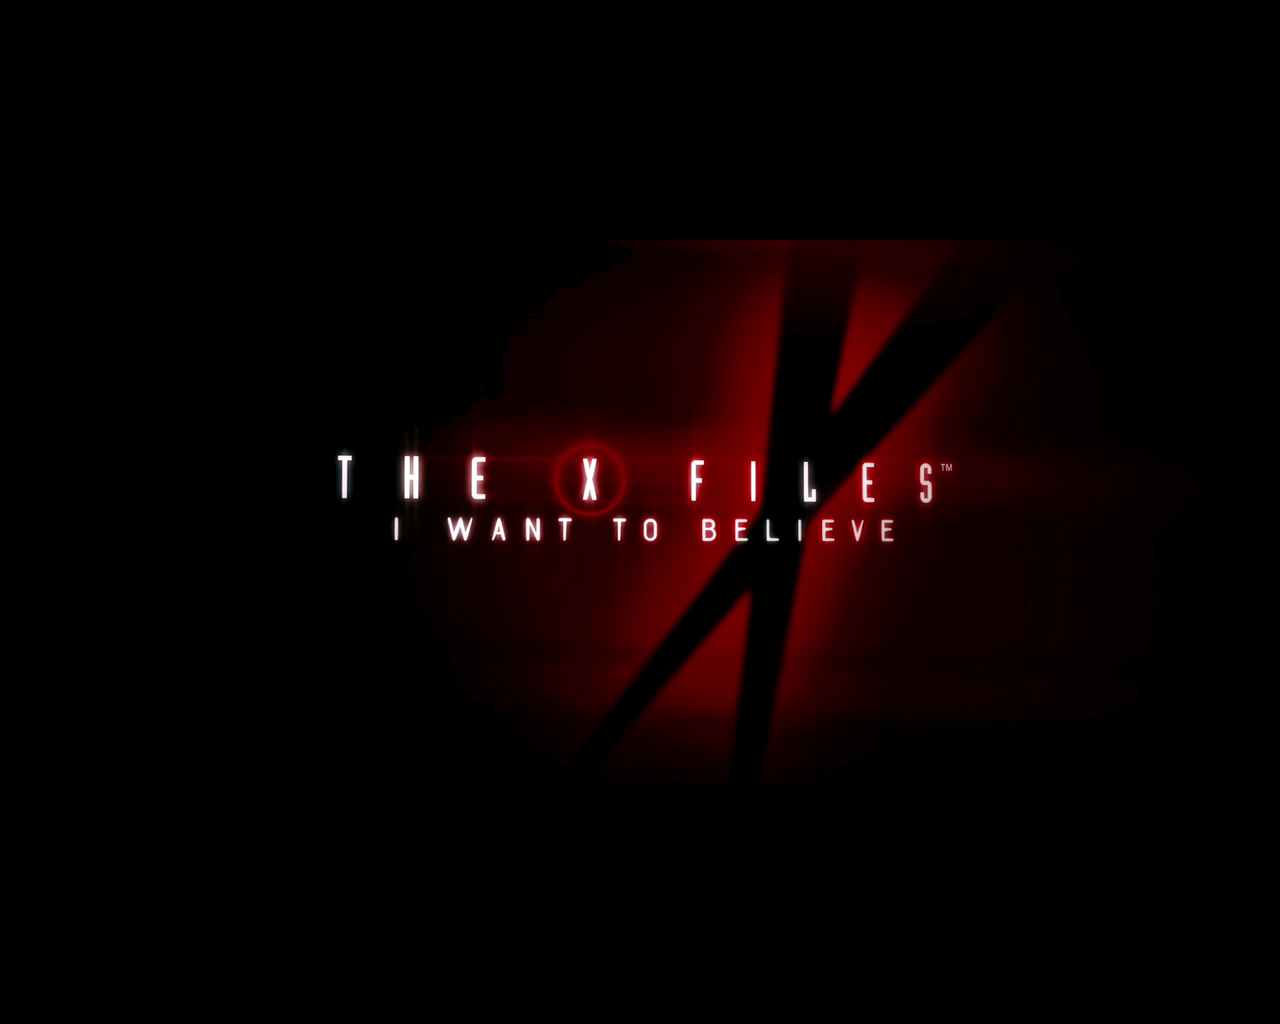 Free Download Black Background The X Files I Want To Believe